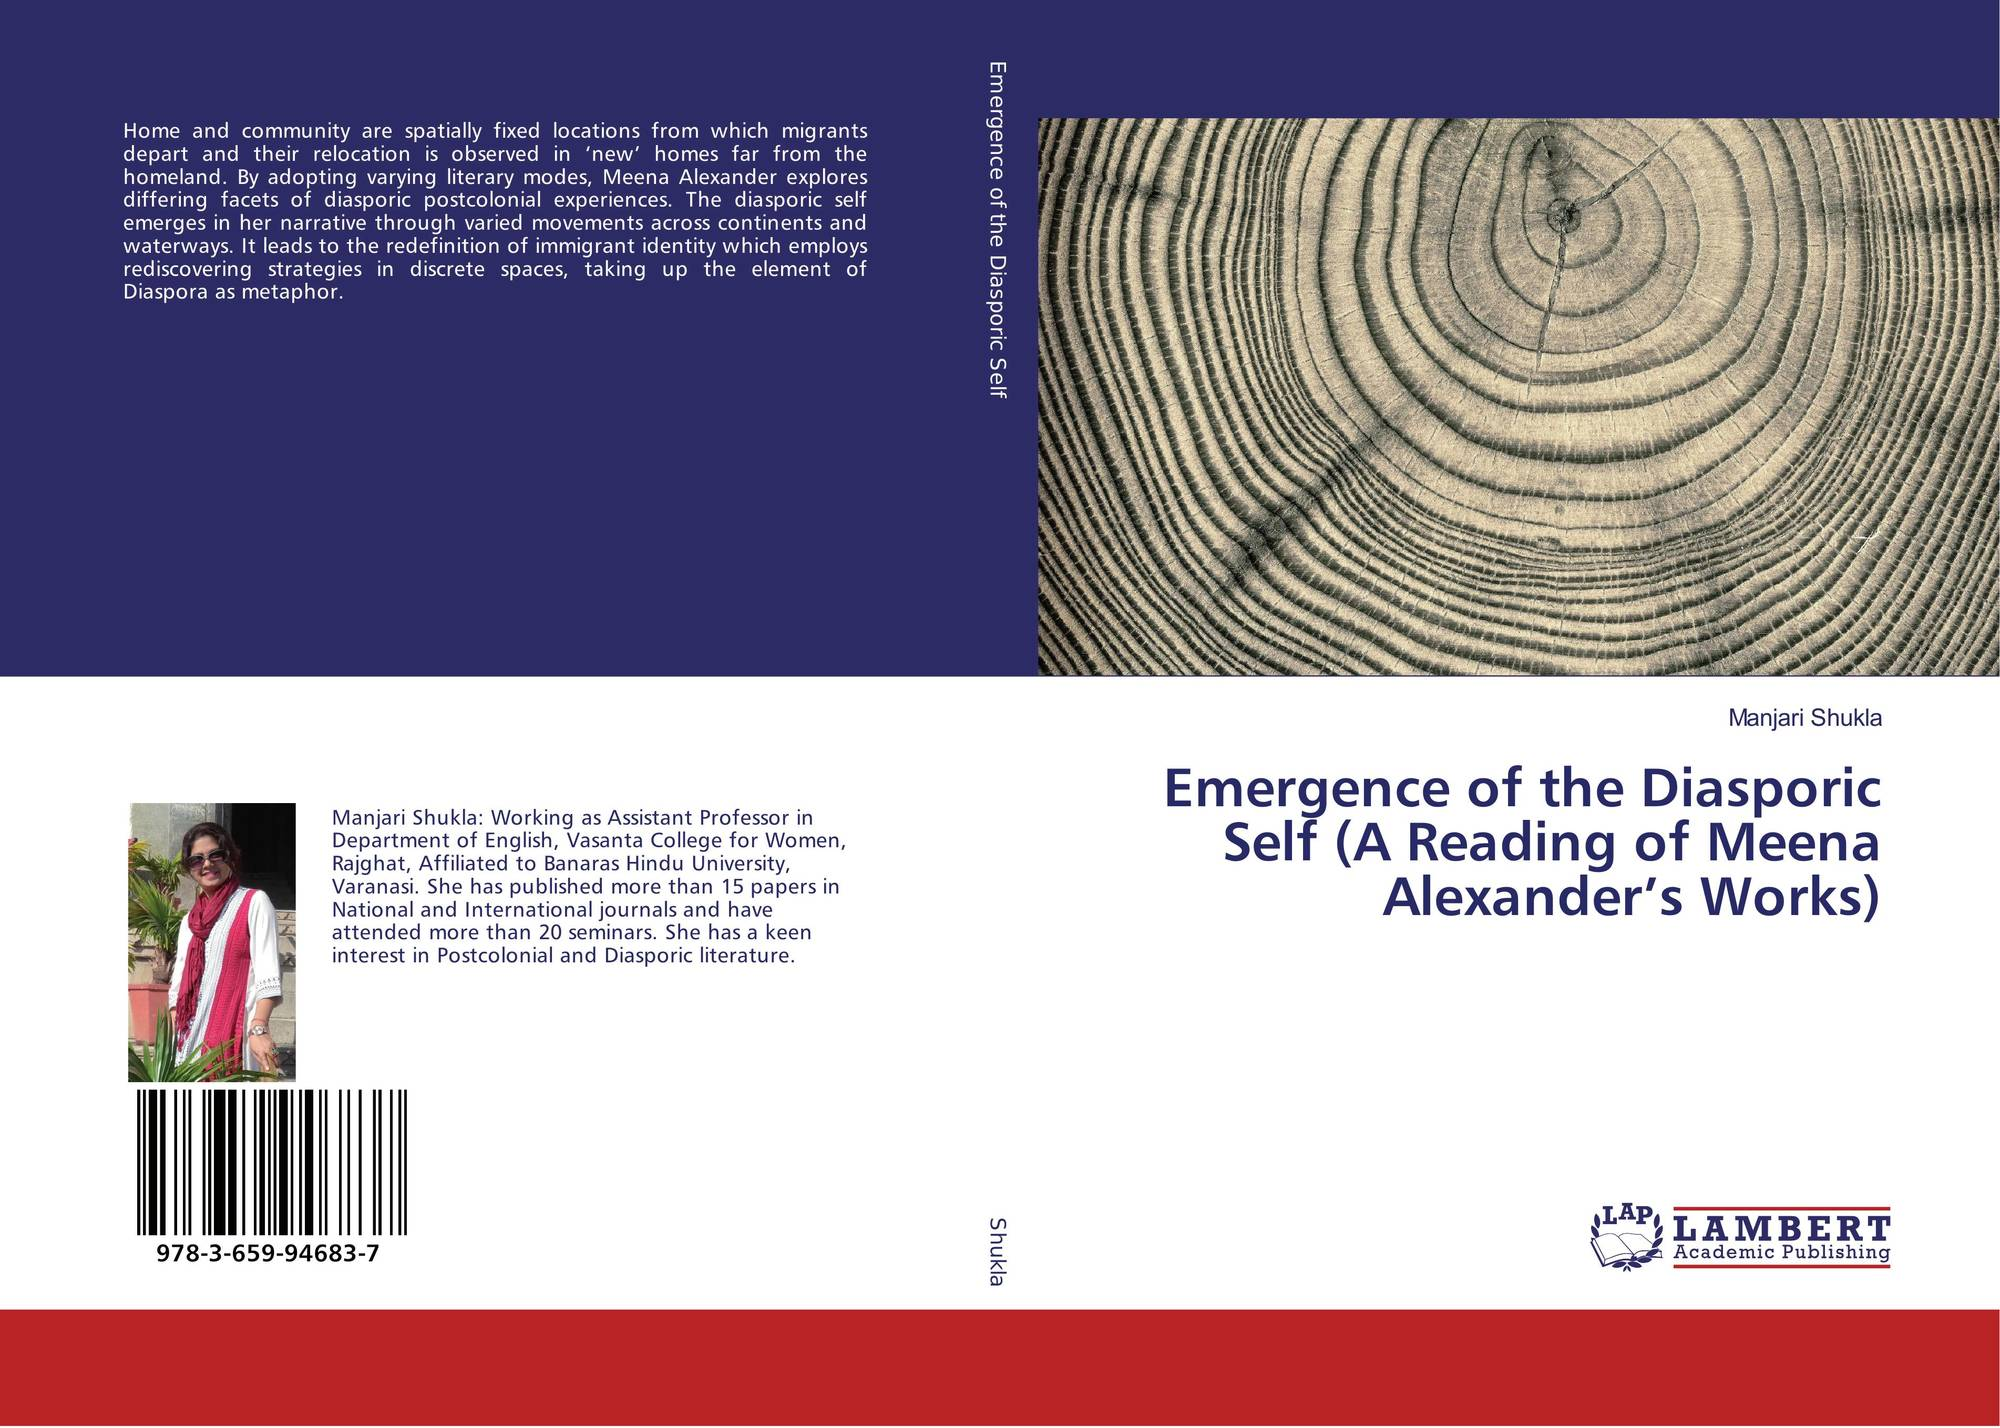 Emergence of the Diasporic Self (A Reading of Meena